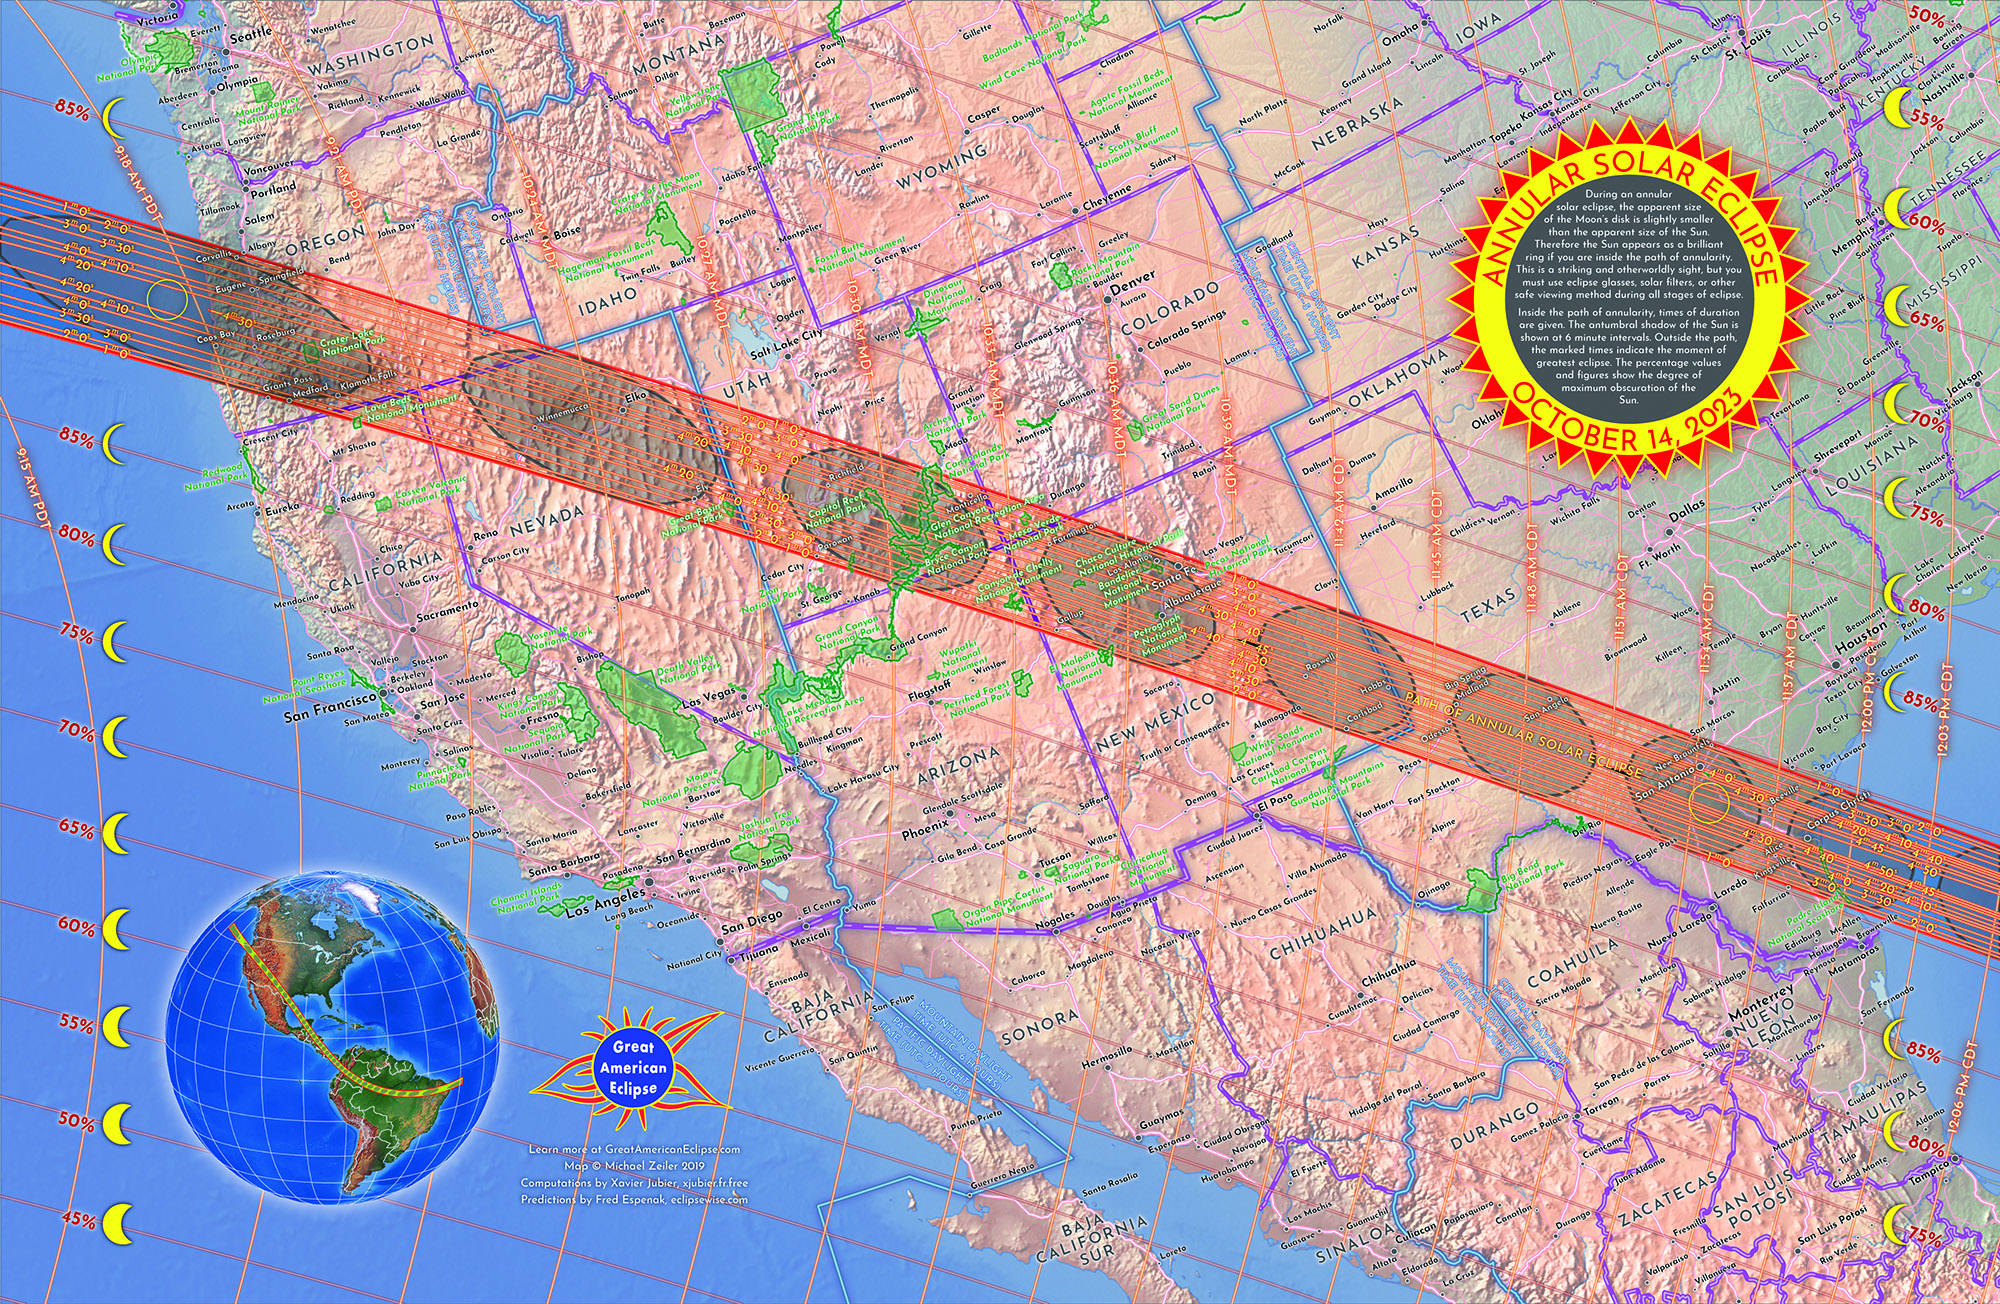 The path of annularity across the United States. This map available in two sizes at  https://www.greatamericaneclipse.com/maps-and-posters/2023map